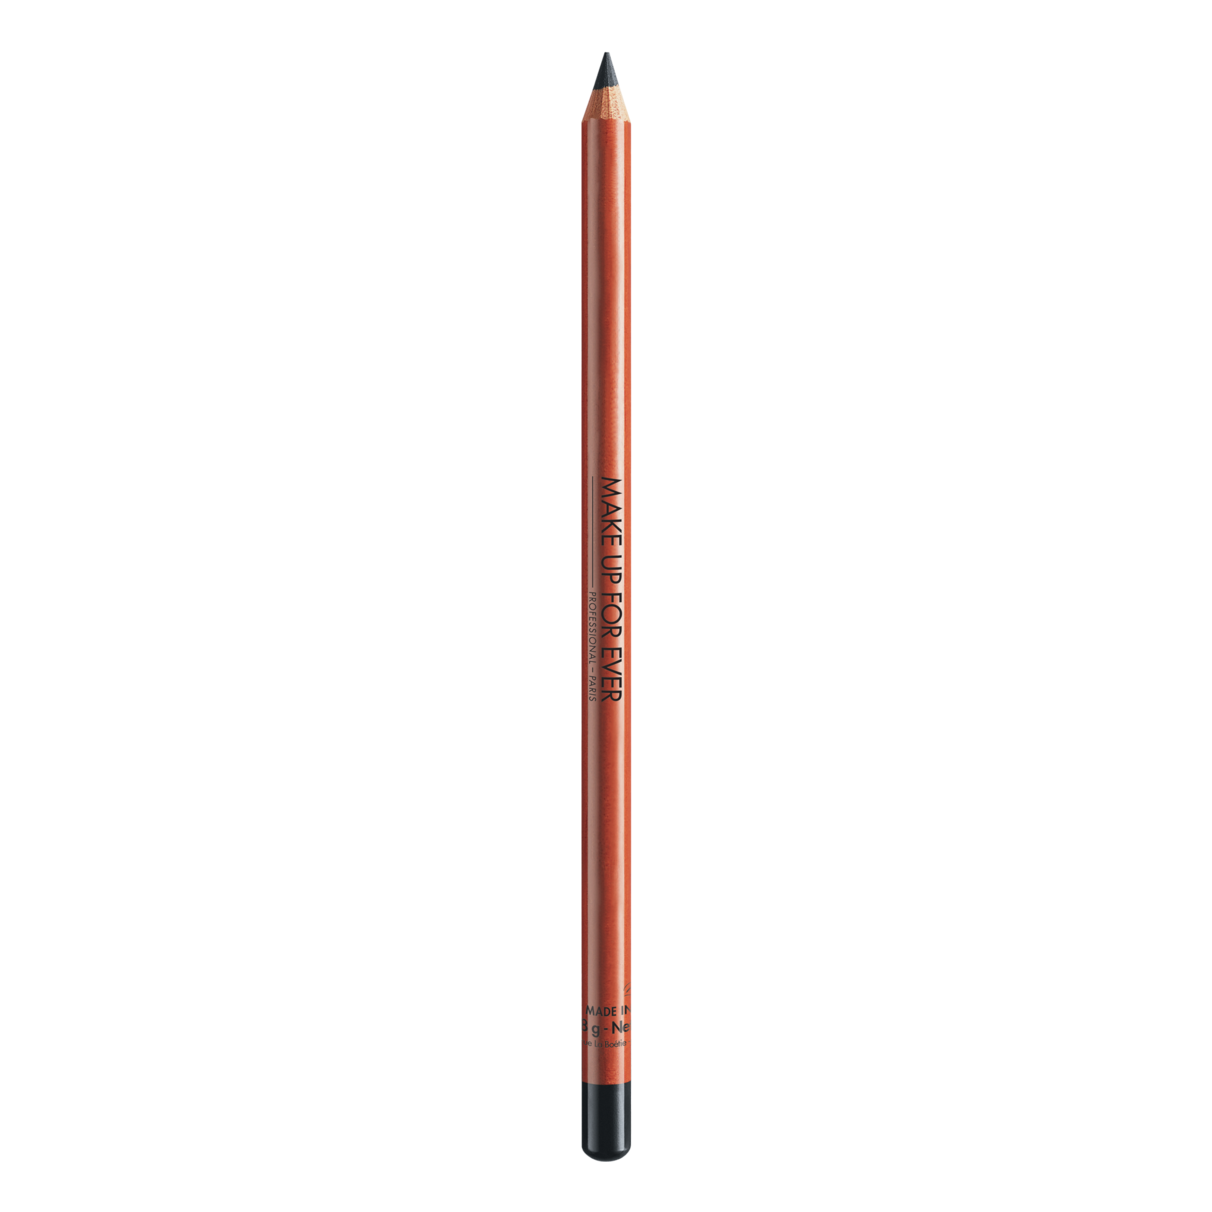 Pencil Download Png High quality